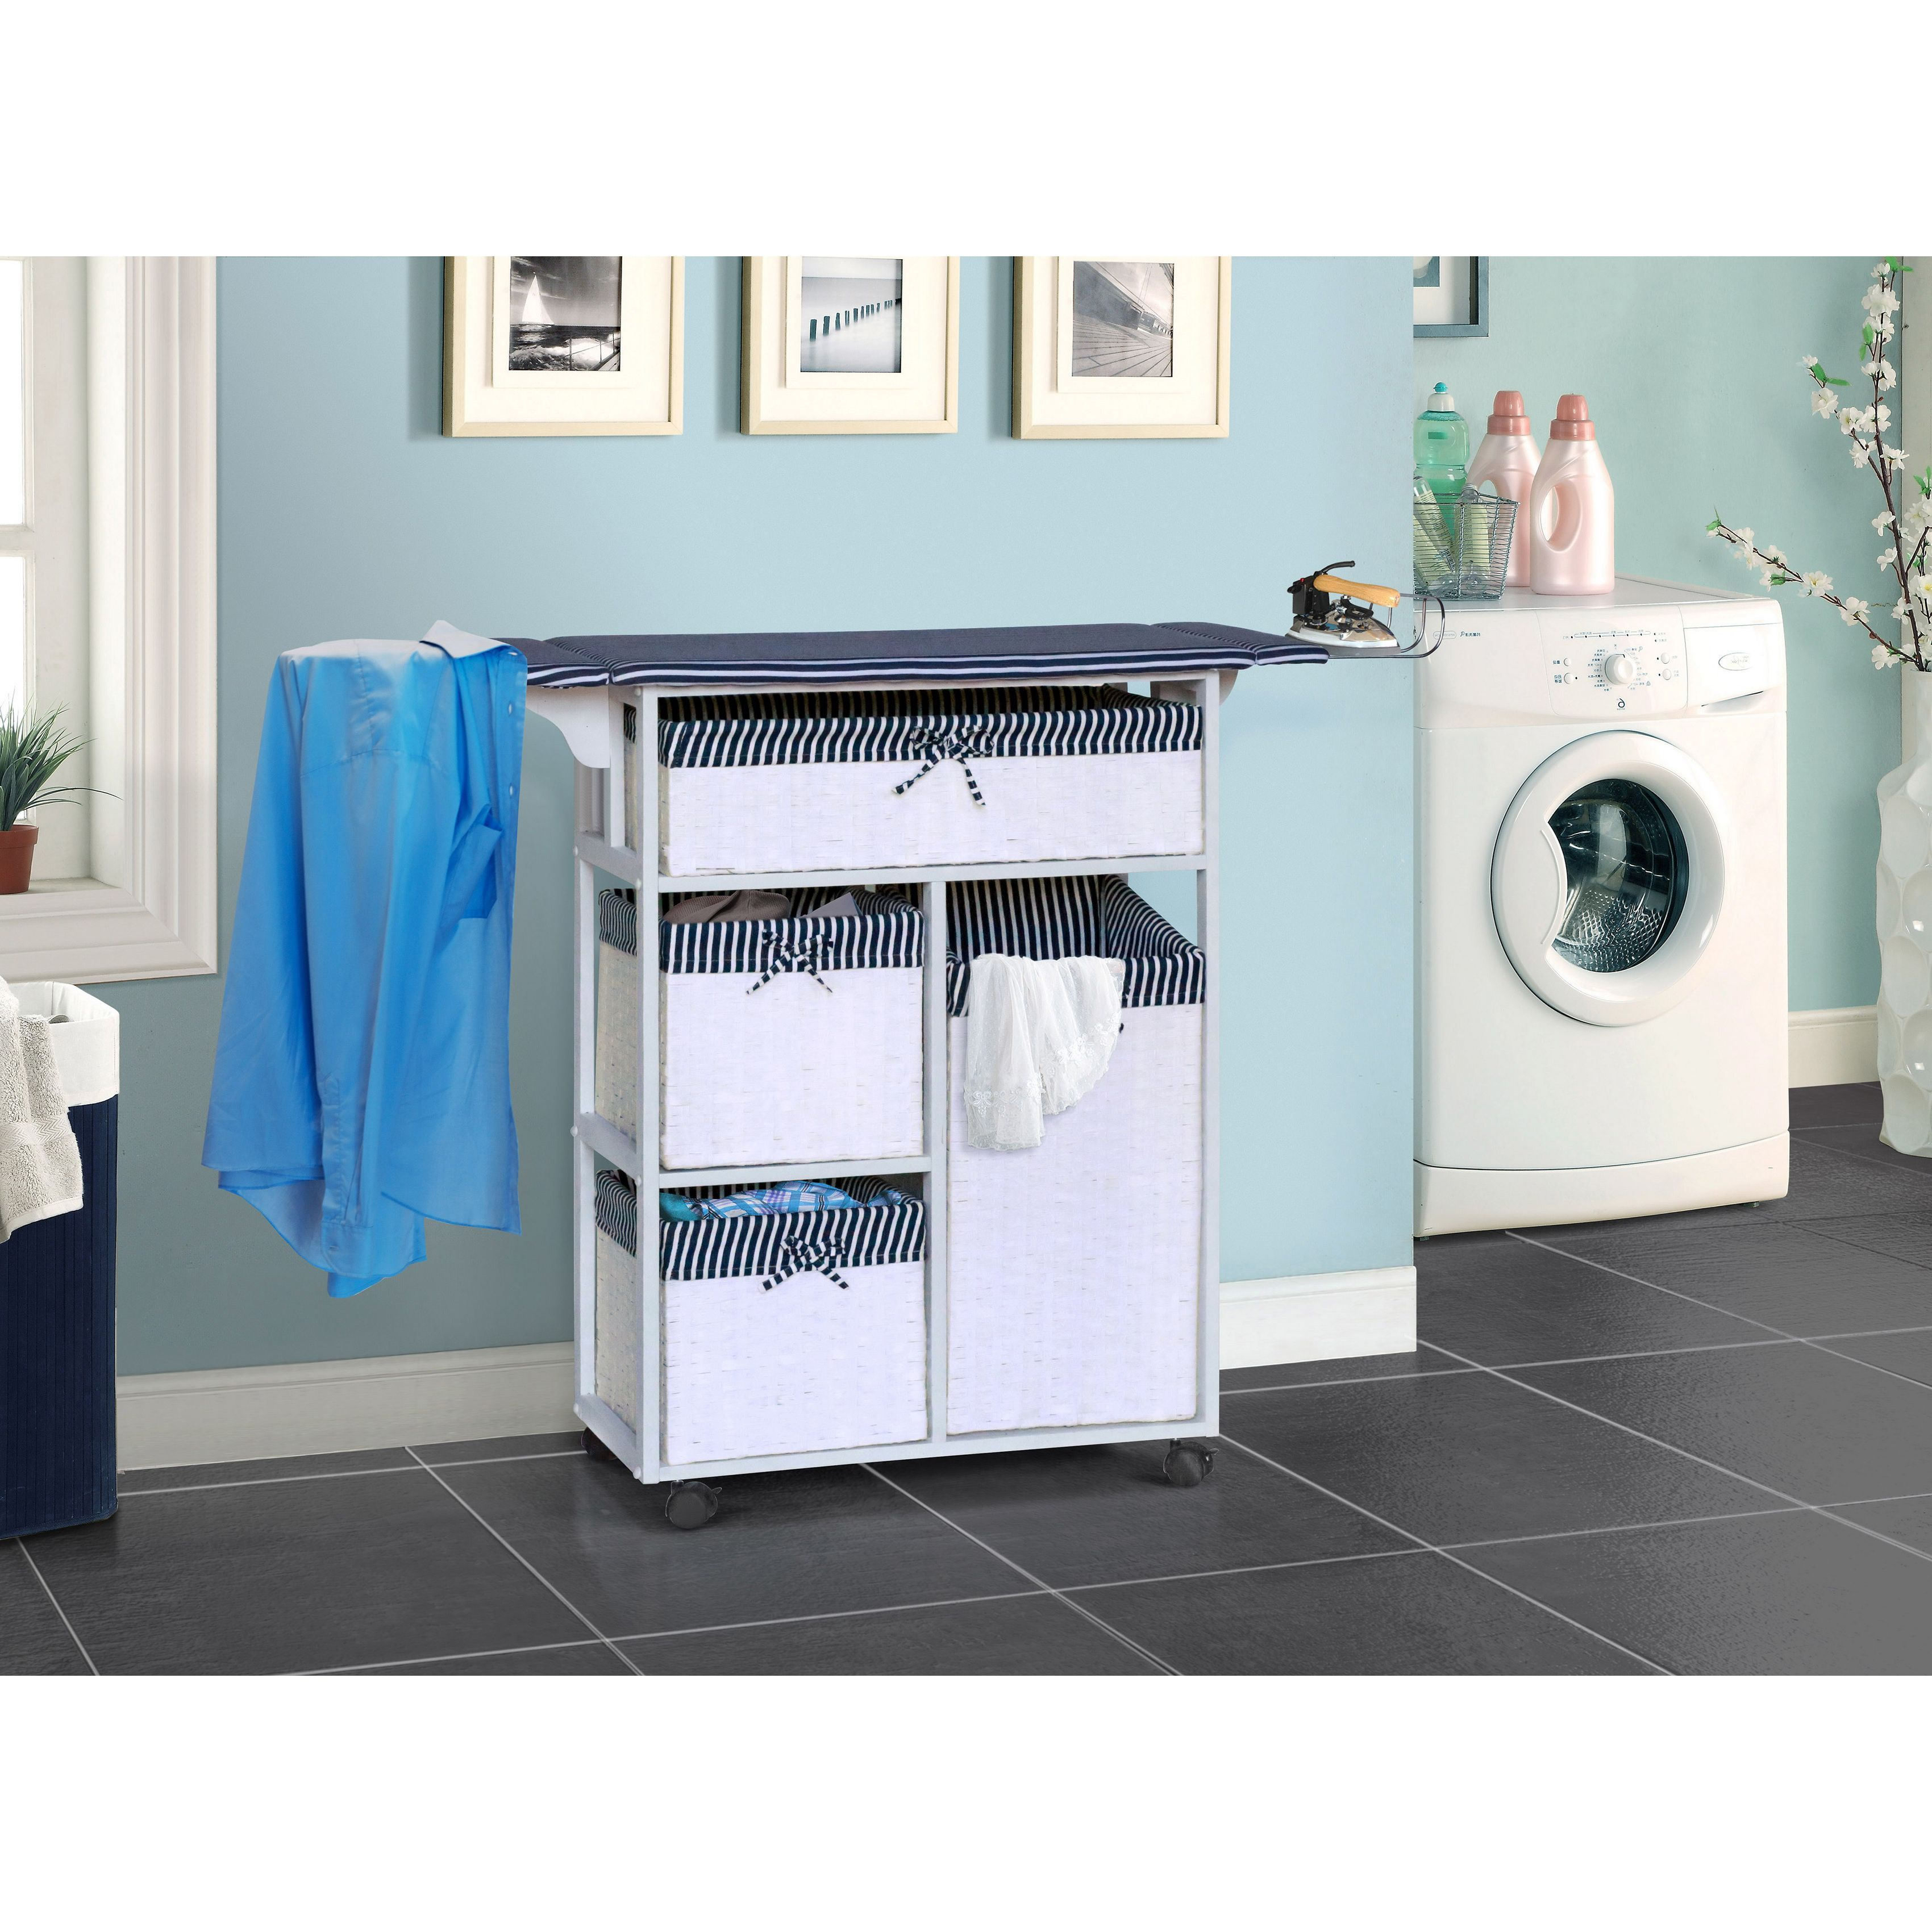 Gallerie Decor All In One Laundry Table Laundry Table Blue Wood Laundry Room Design Laundry Table Laundry Room Storage